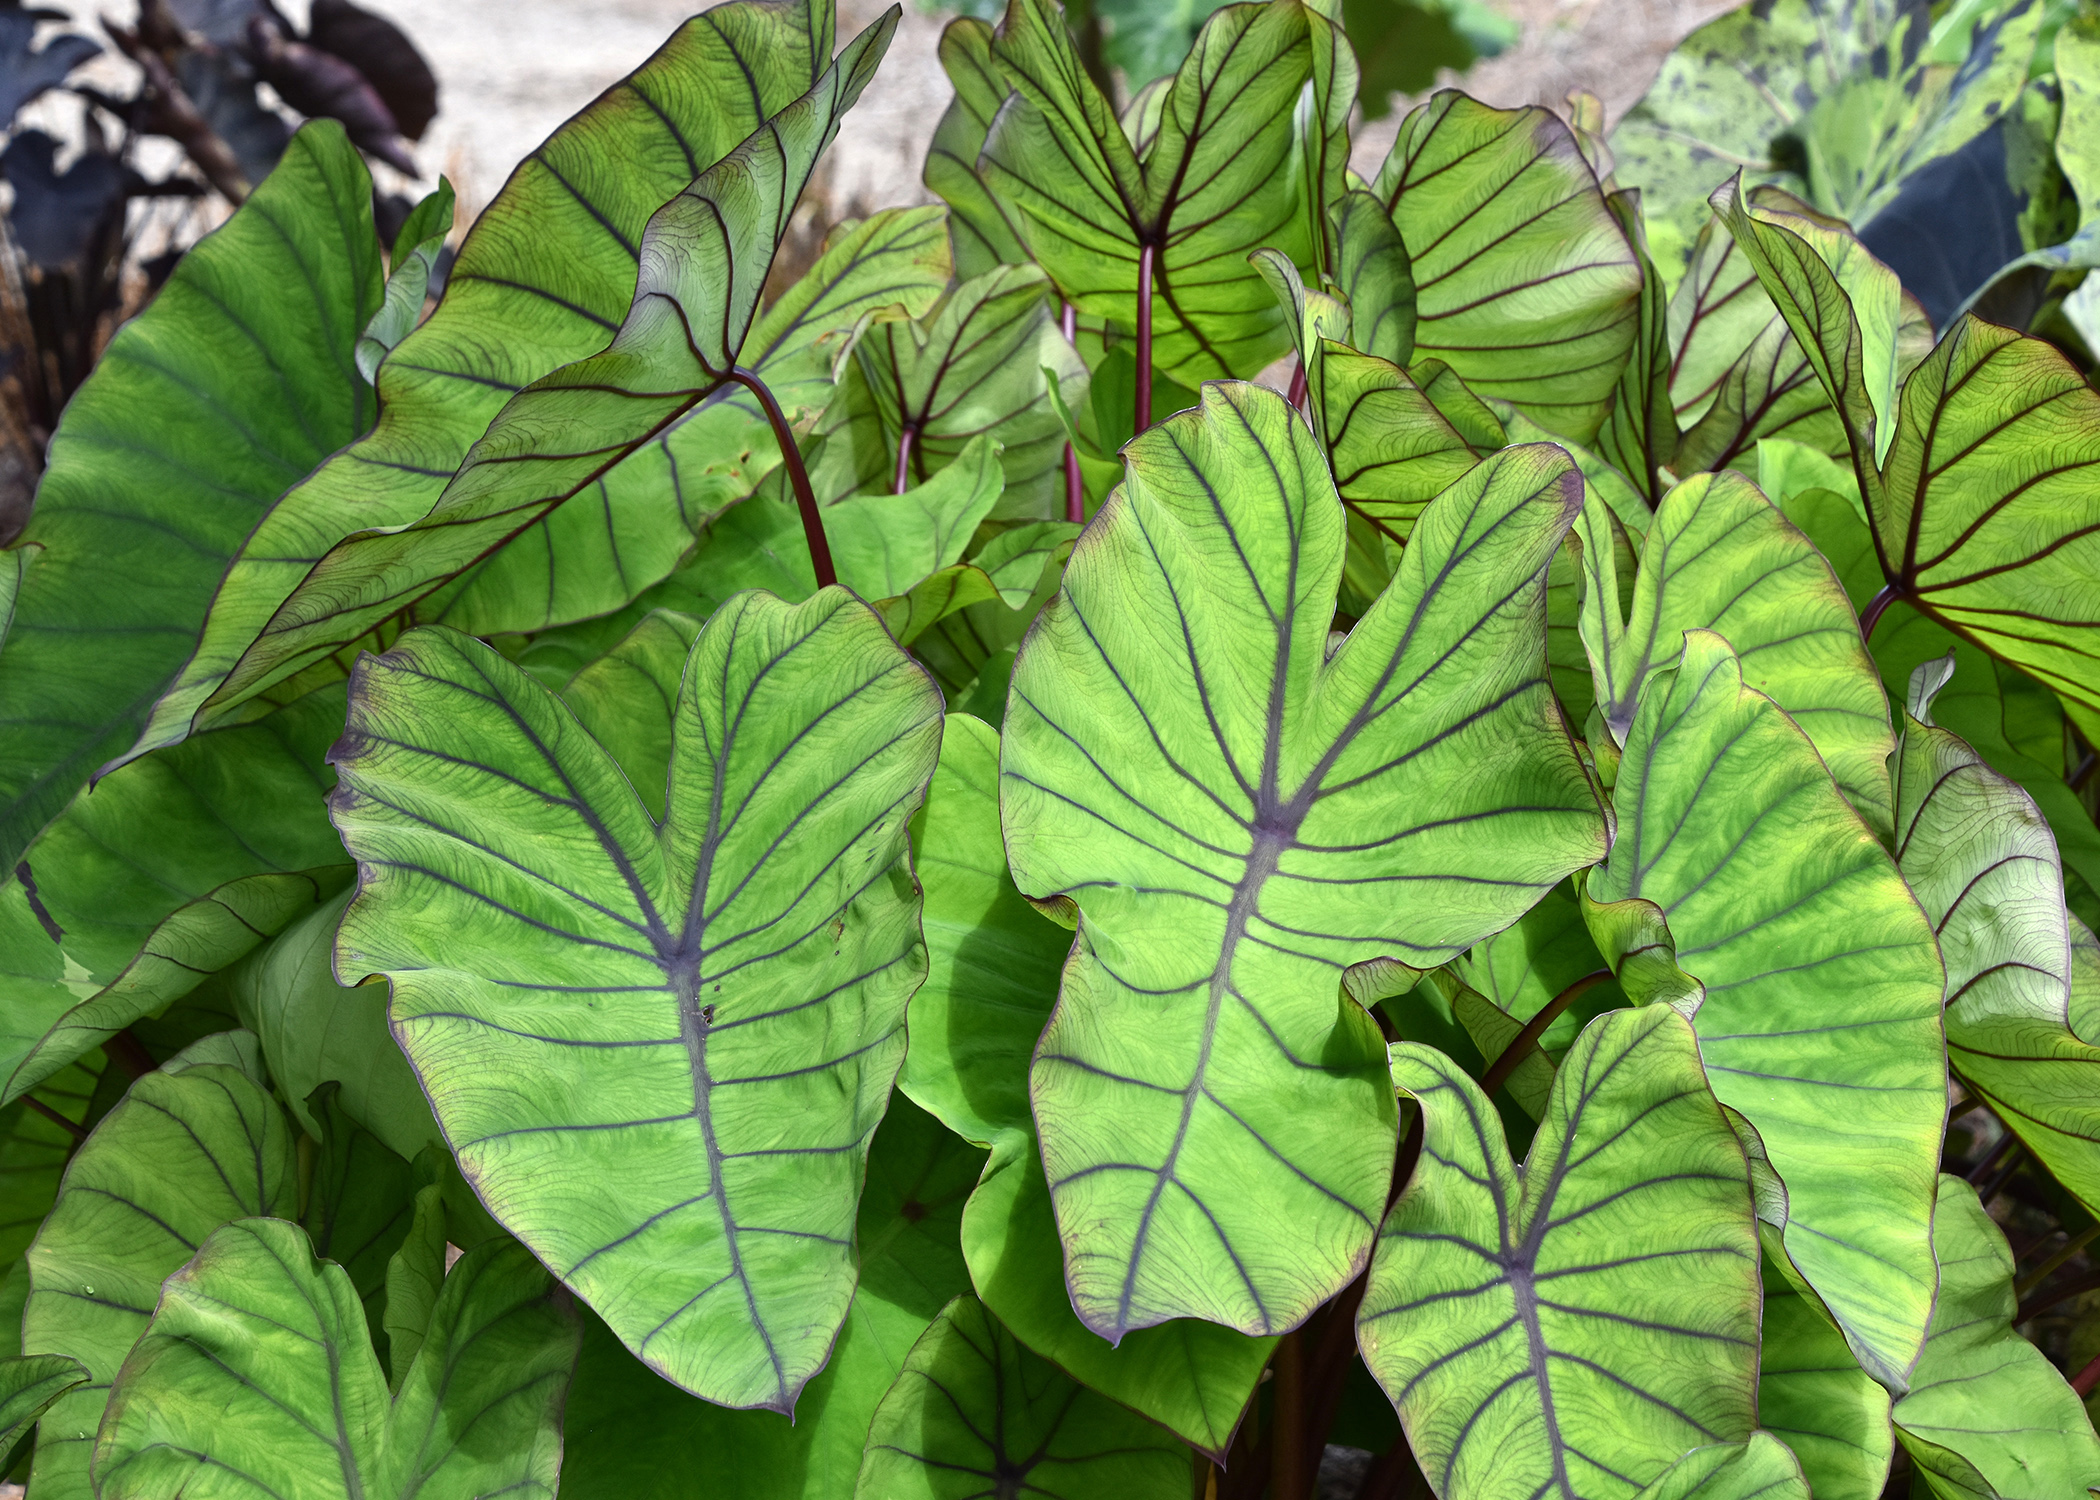 Elephant ears create a tropical paradise mississippi for Green plants for garden